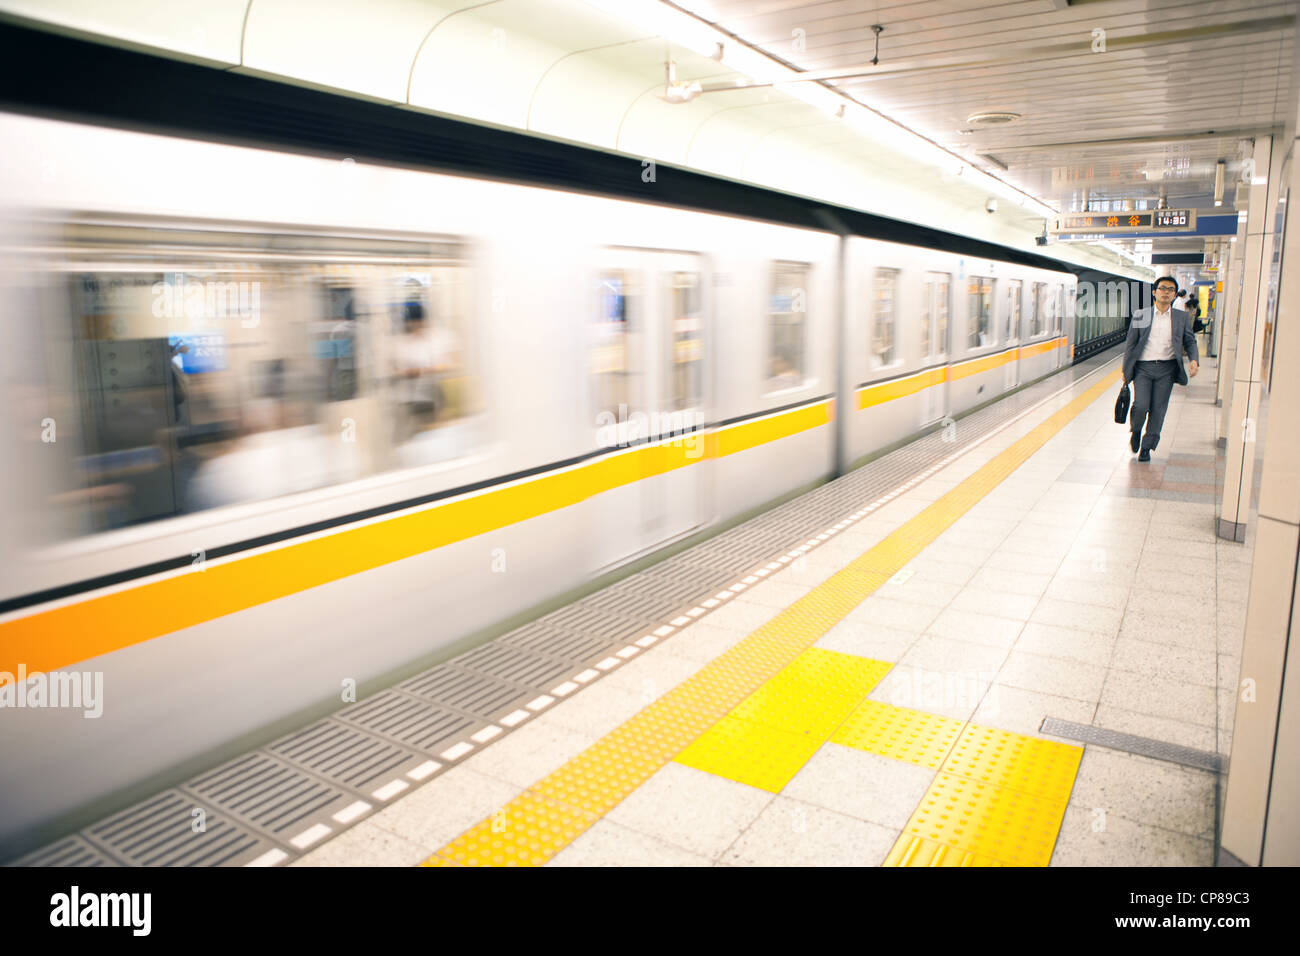 Man walking on platform of a Tokyo subway station, Japan. - Stock Image